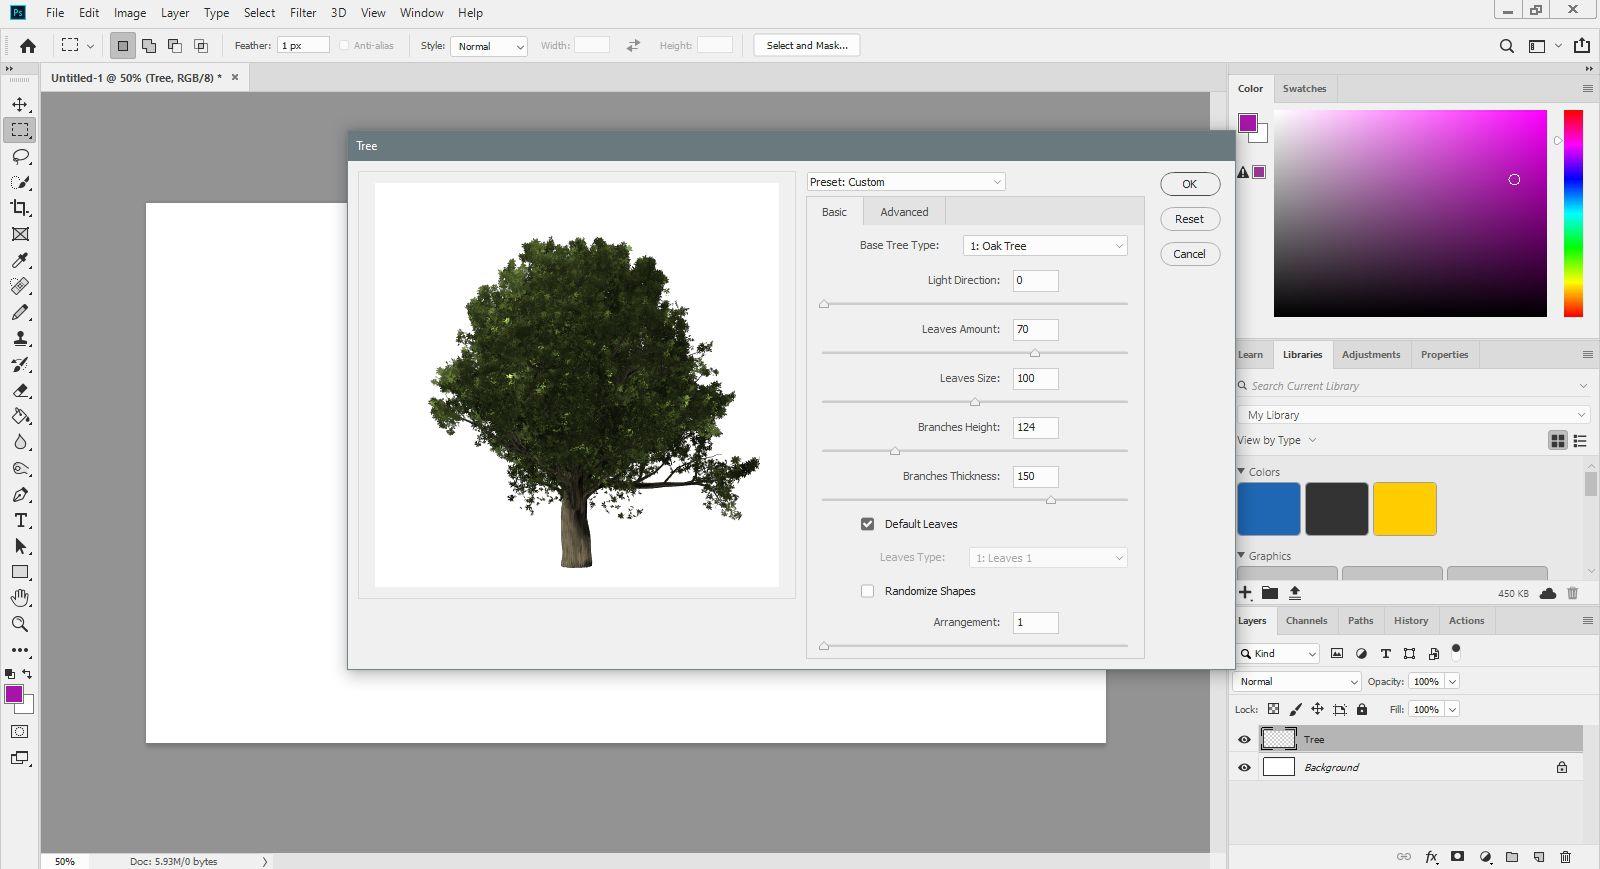 The basic tree filter options in Photoshop.